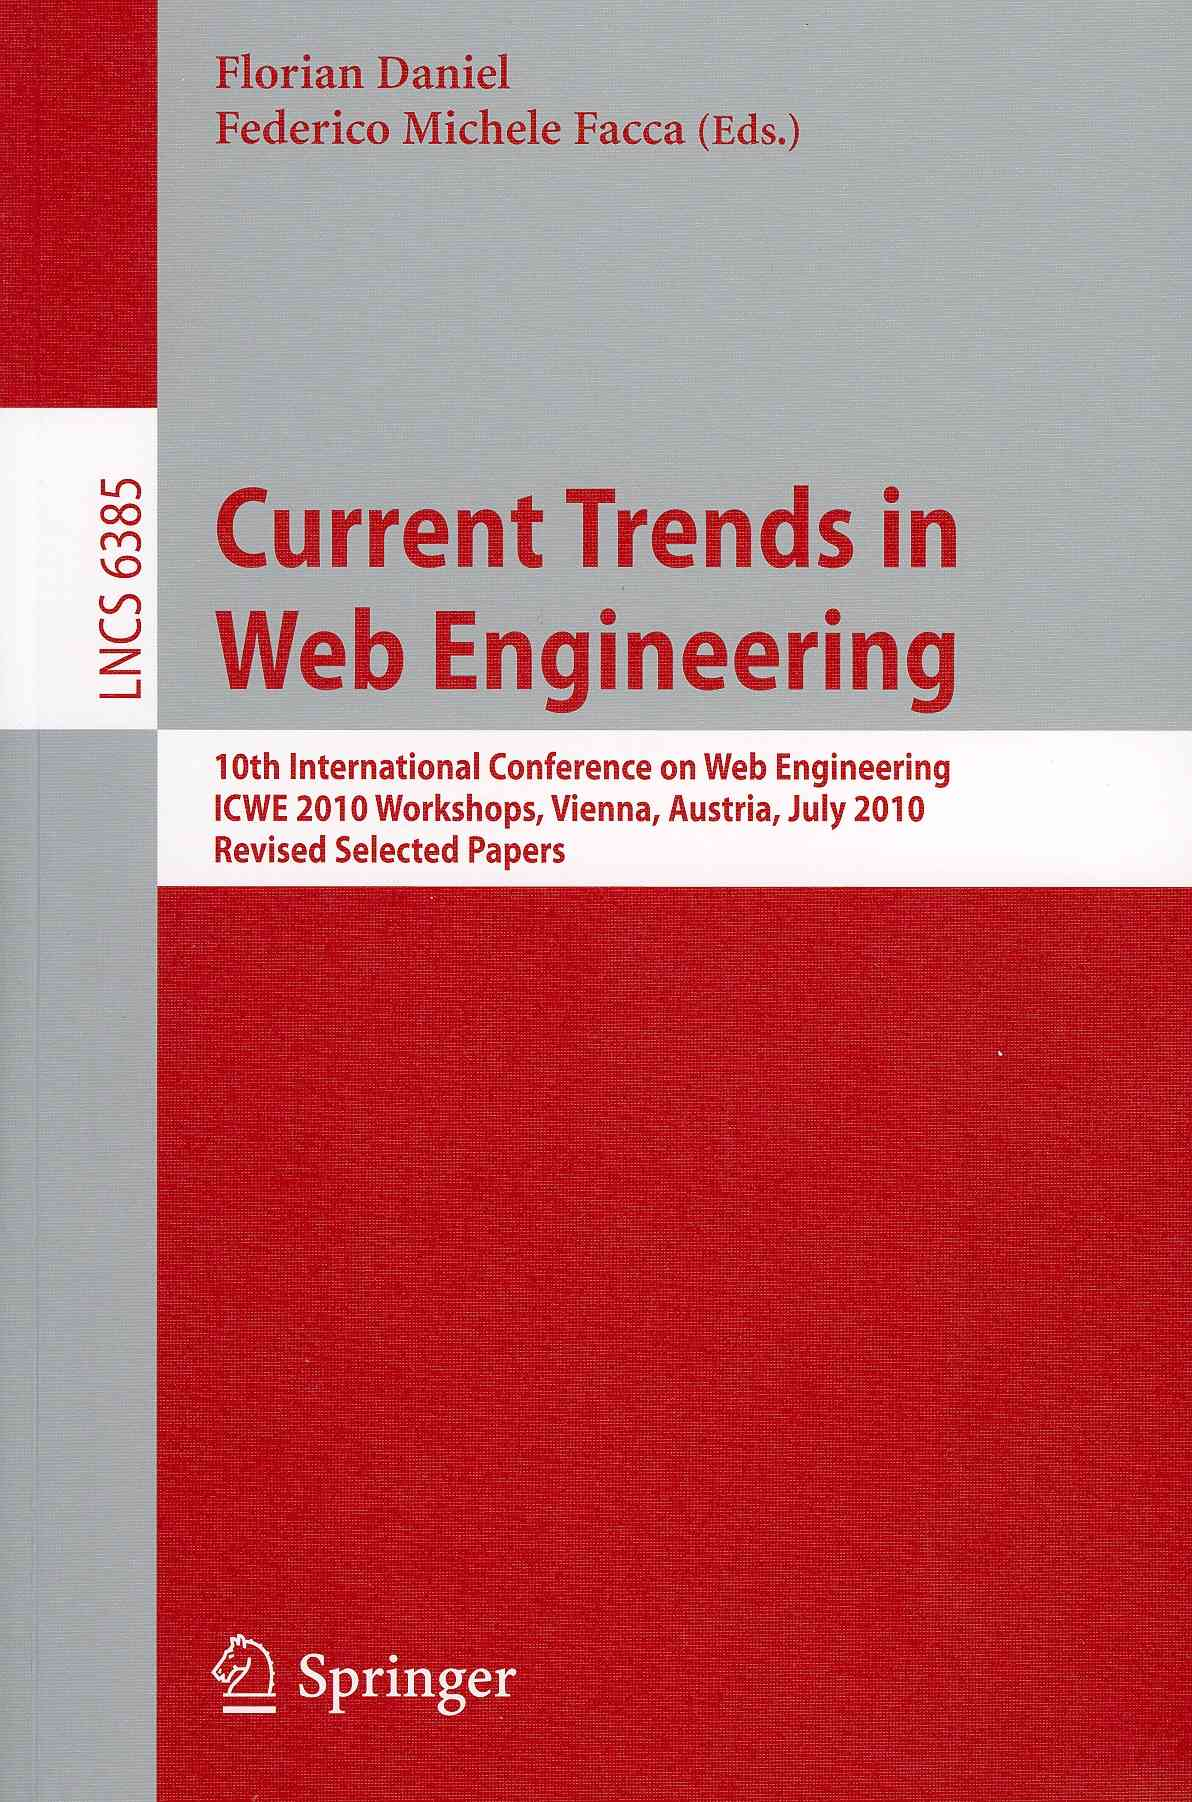 Current Trends in Web Engineering, Icwe 2010 Workshops By Daniel, Florian (EDT)